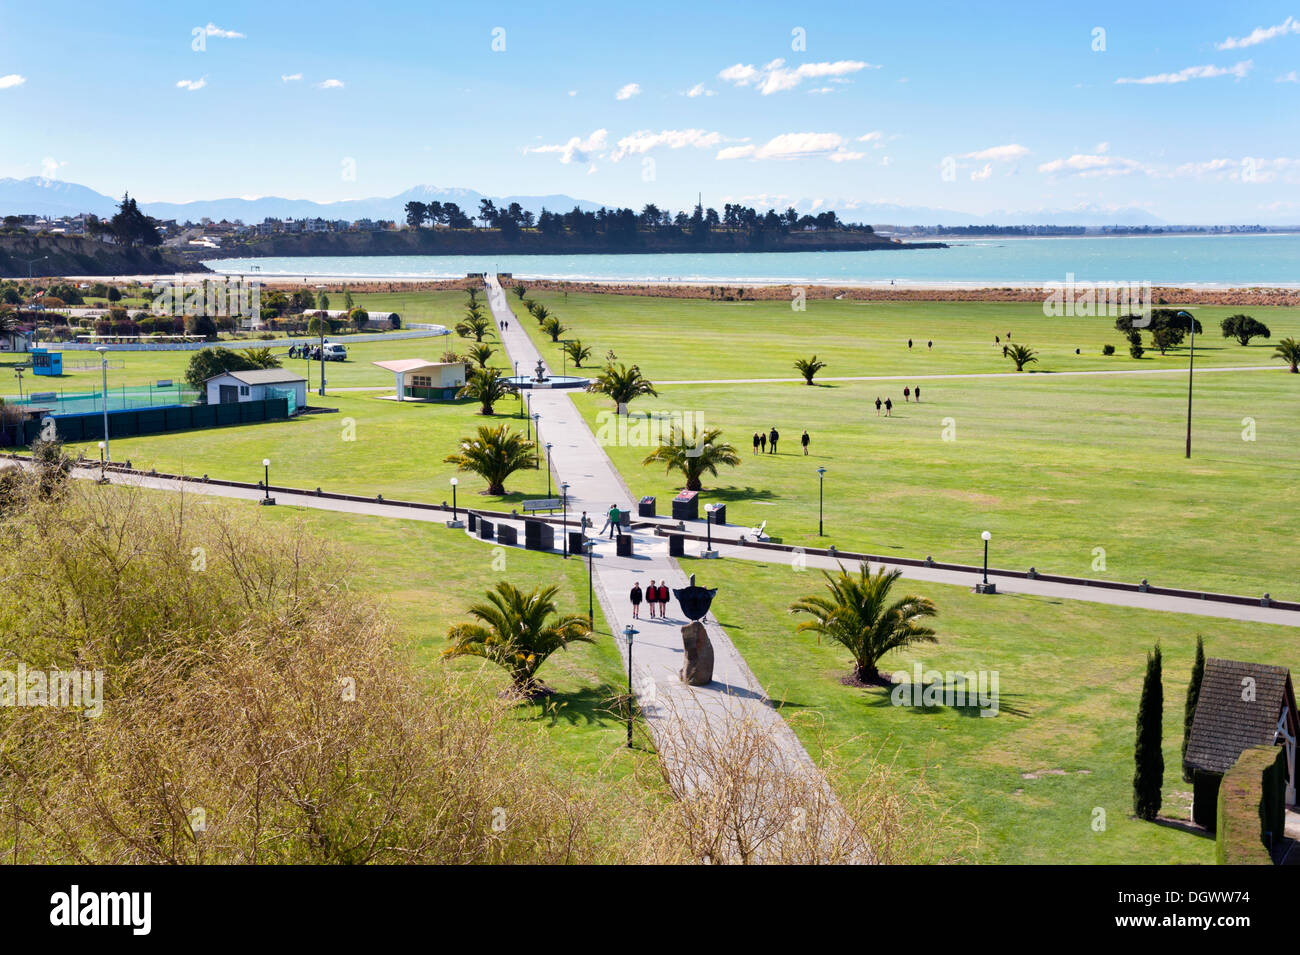 Caroline Bay Park At The Coastal Resort Of Timaru New Zealand Stock Photo Royalty Free Image